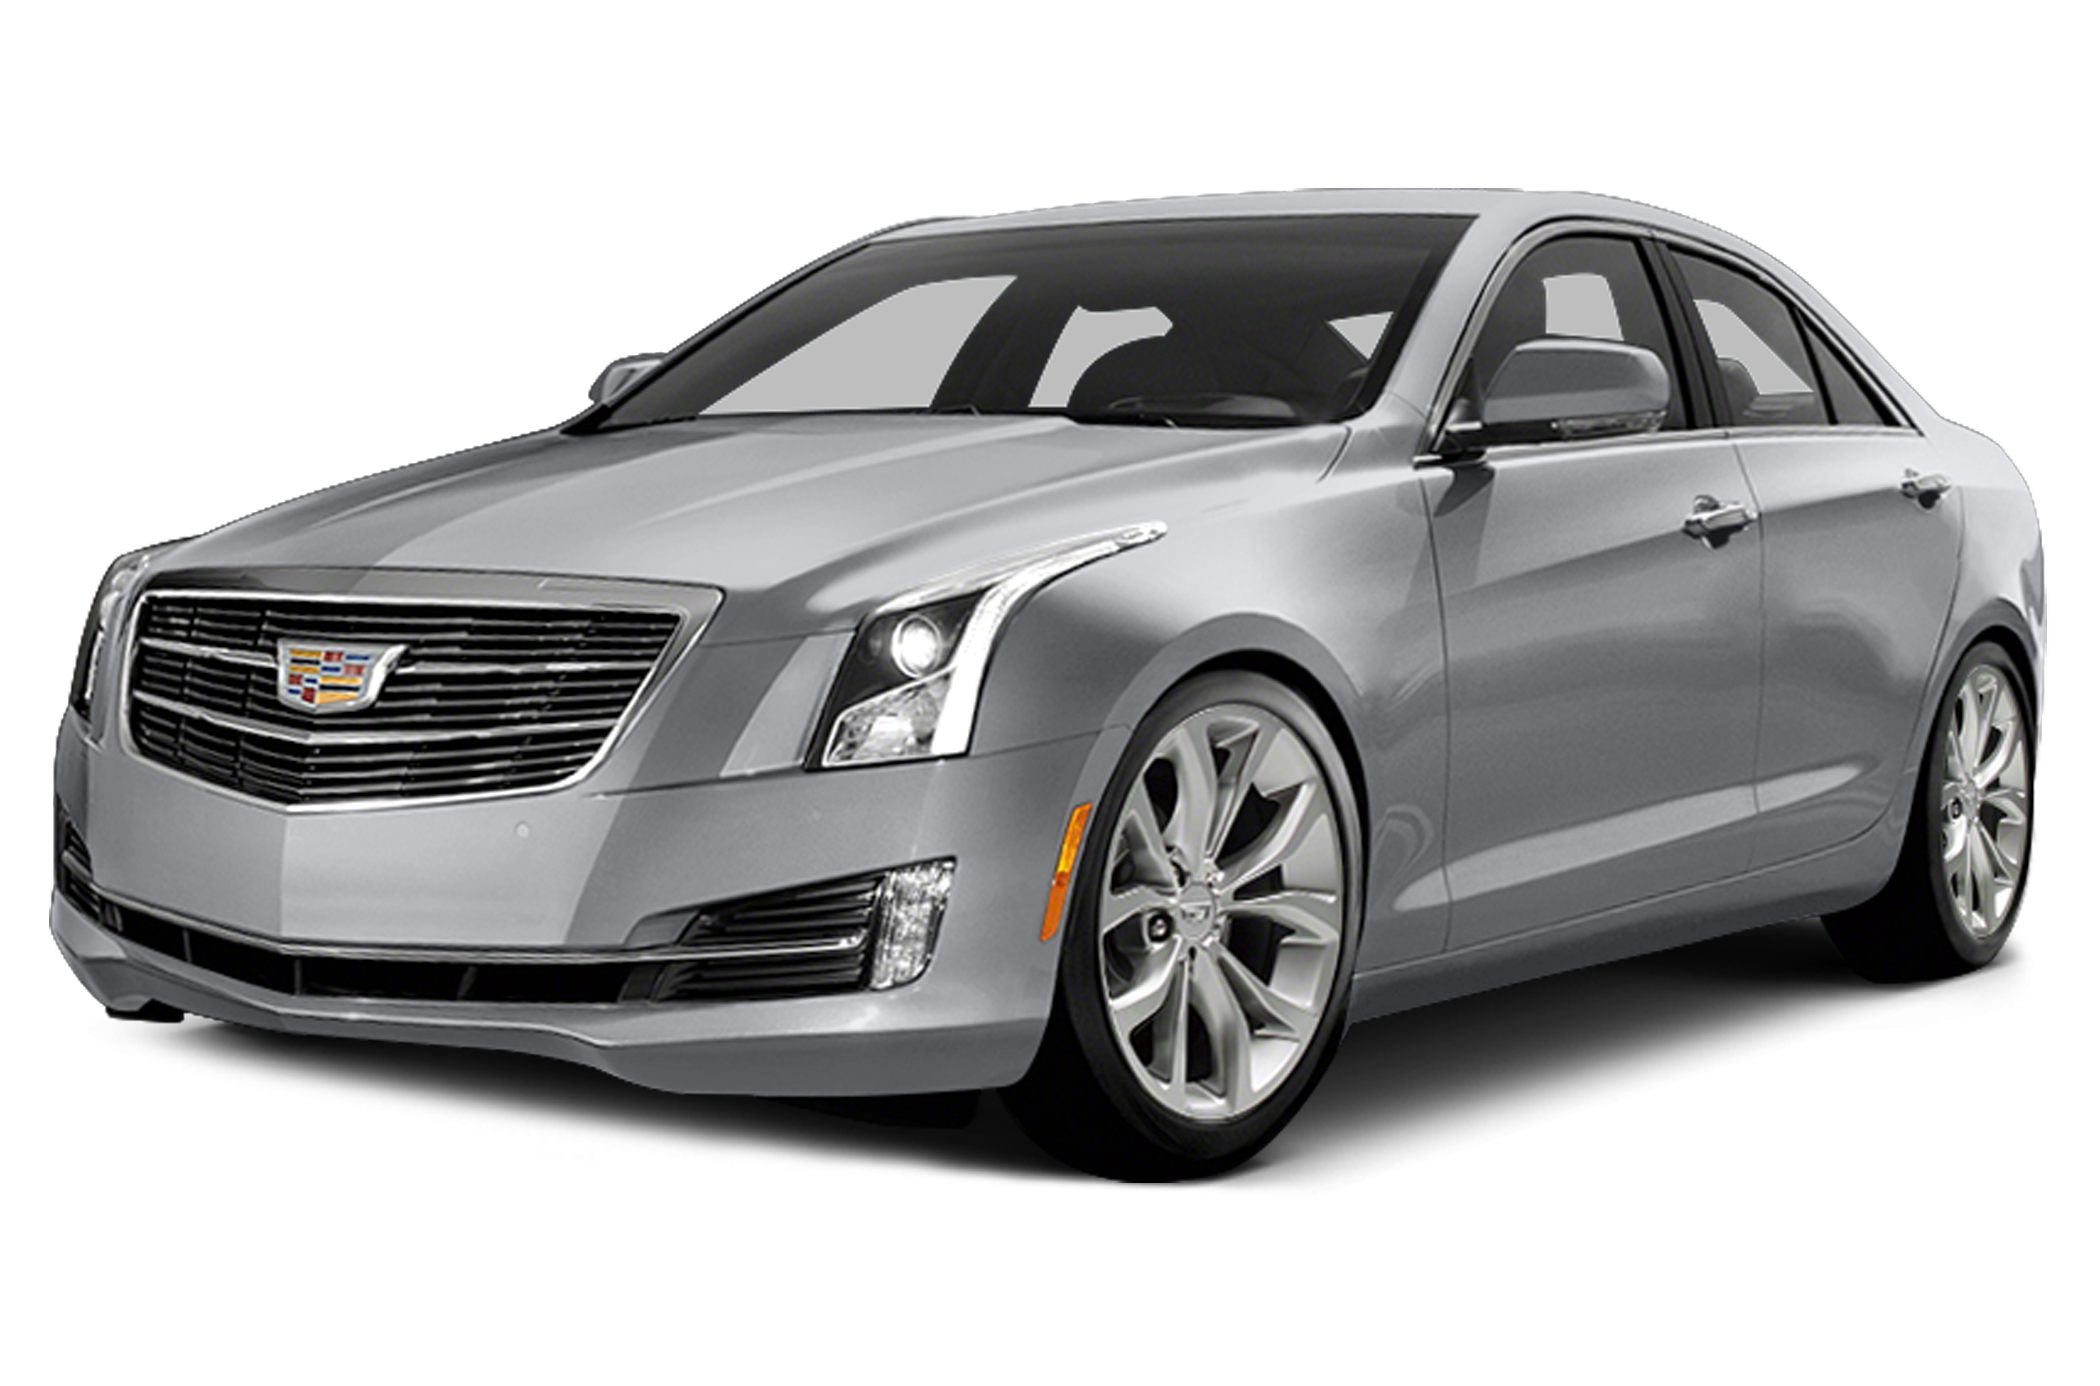 on vehicles ats vehicle collingwood photo cadillac sedan all for sale in vehiclesearchresults